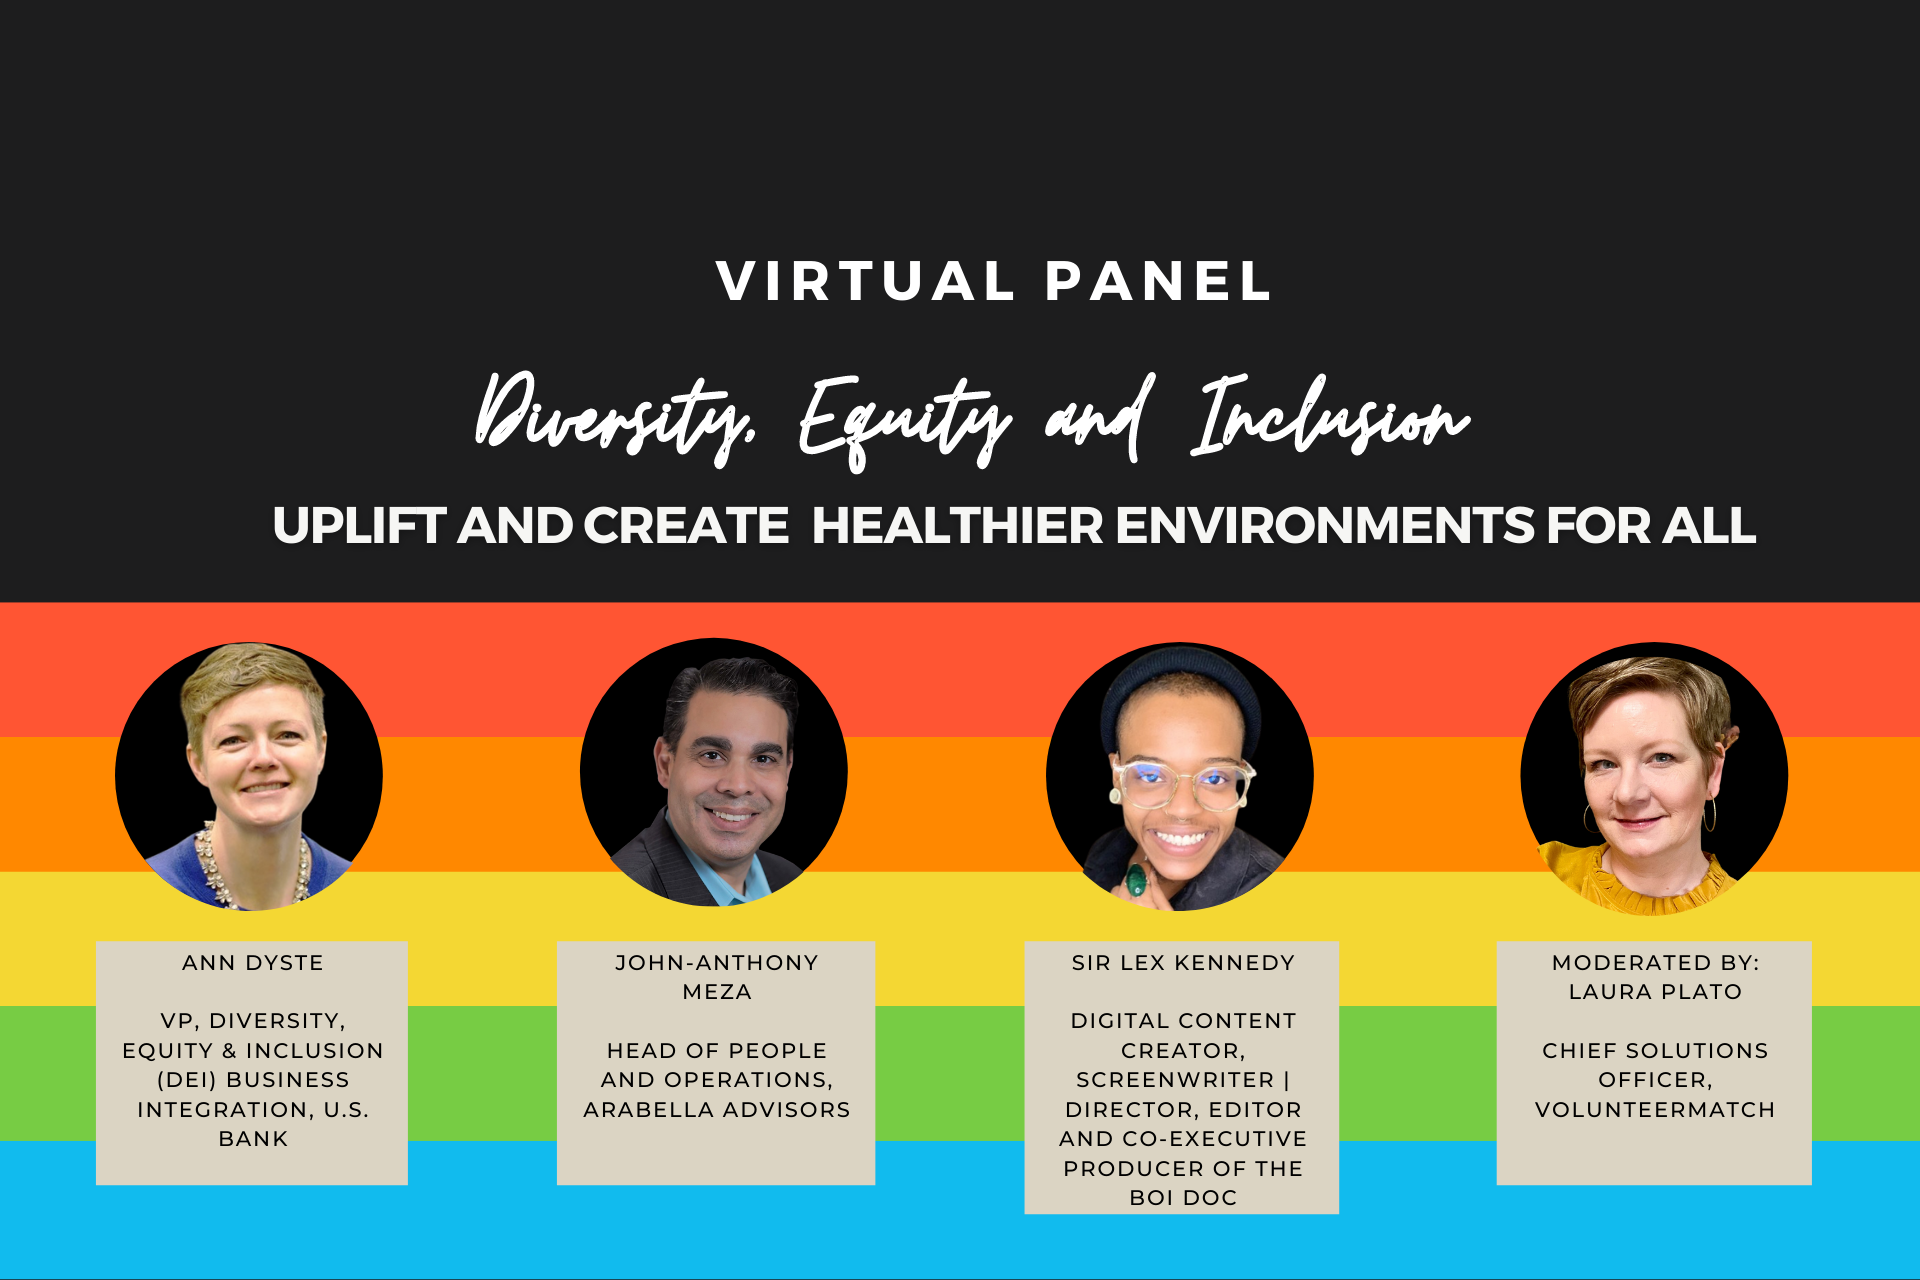 Diversity, Equity, and Inclusion — Uplift and Create Healthier Environments for All_Panelist_Website